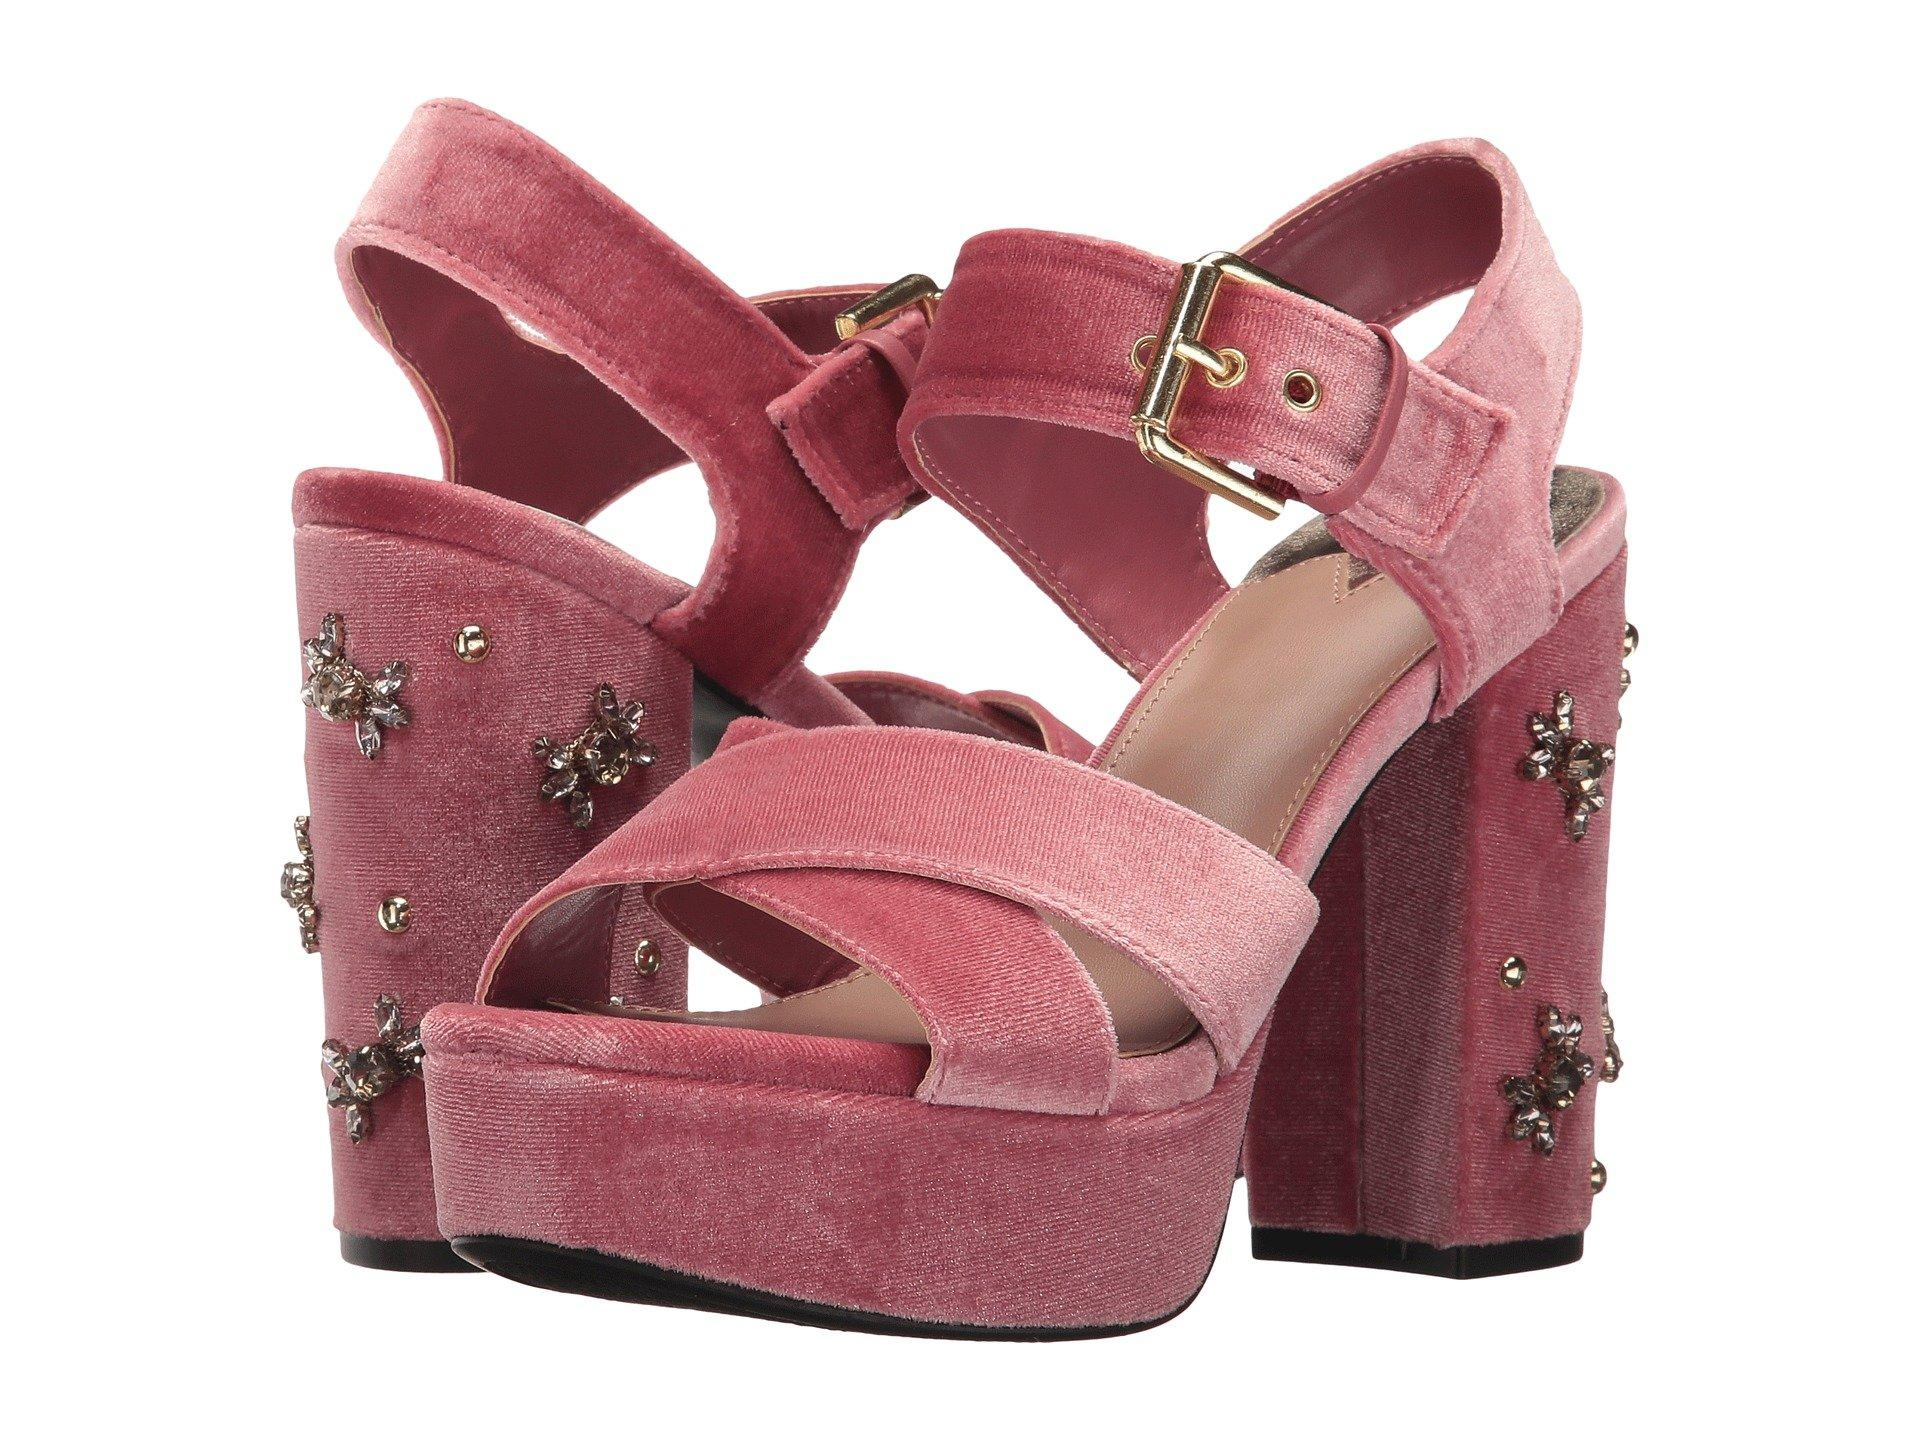 6edbf34dc82edb Circus By Sam Edelman Morgan In Ash Rose Velvet